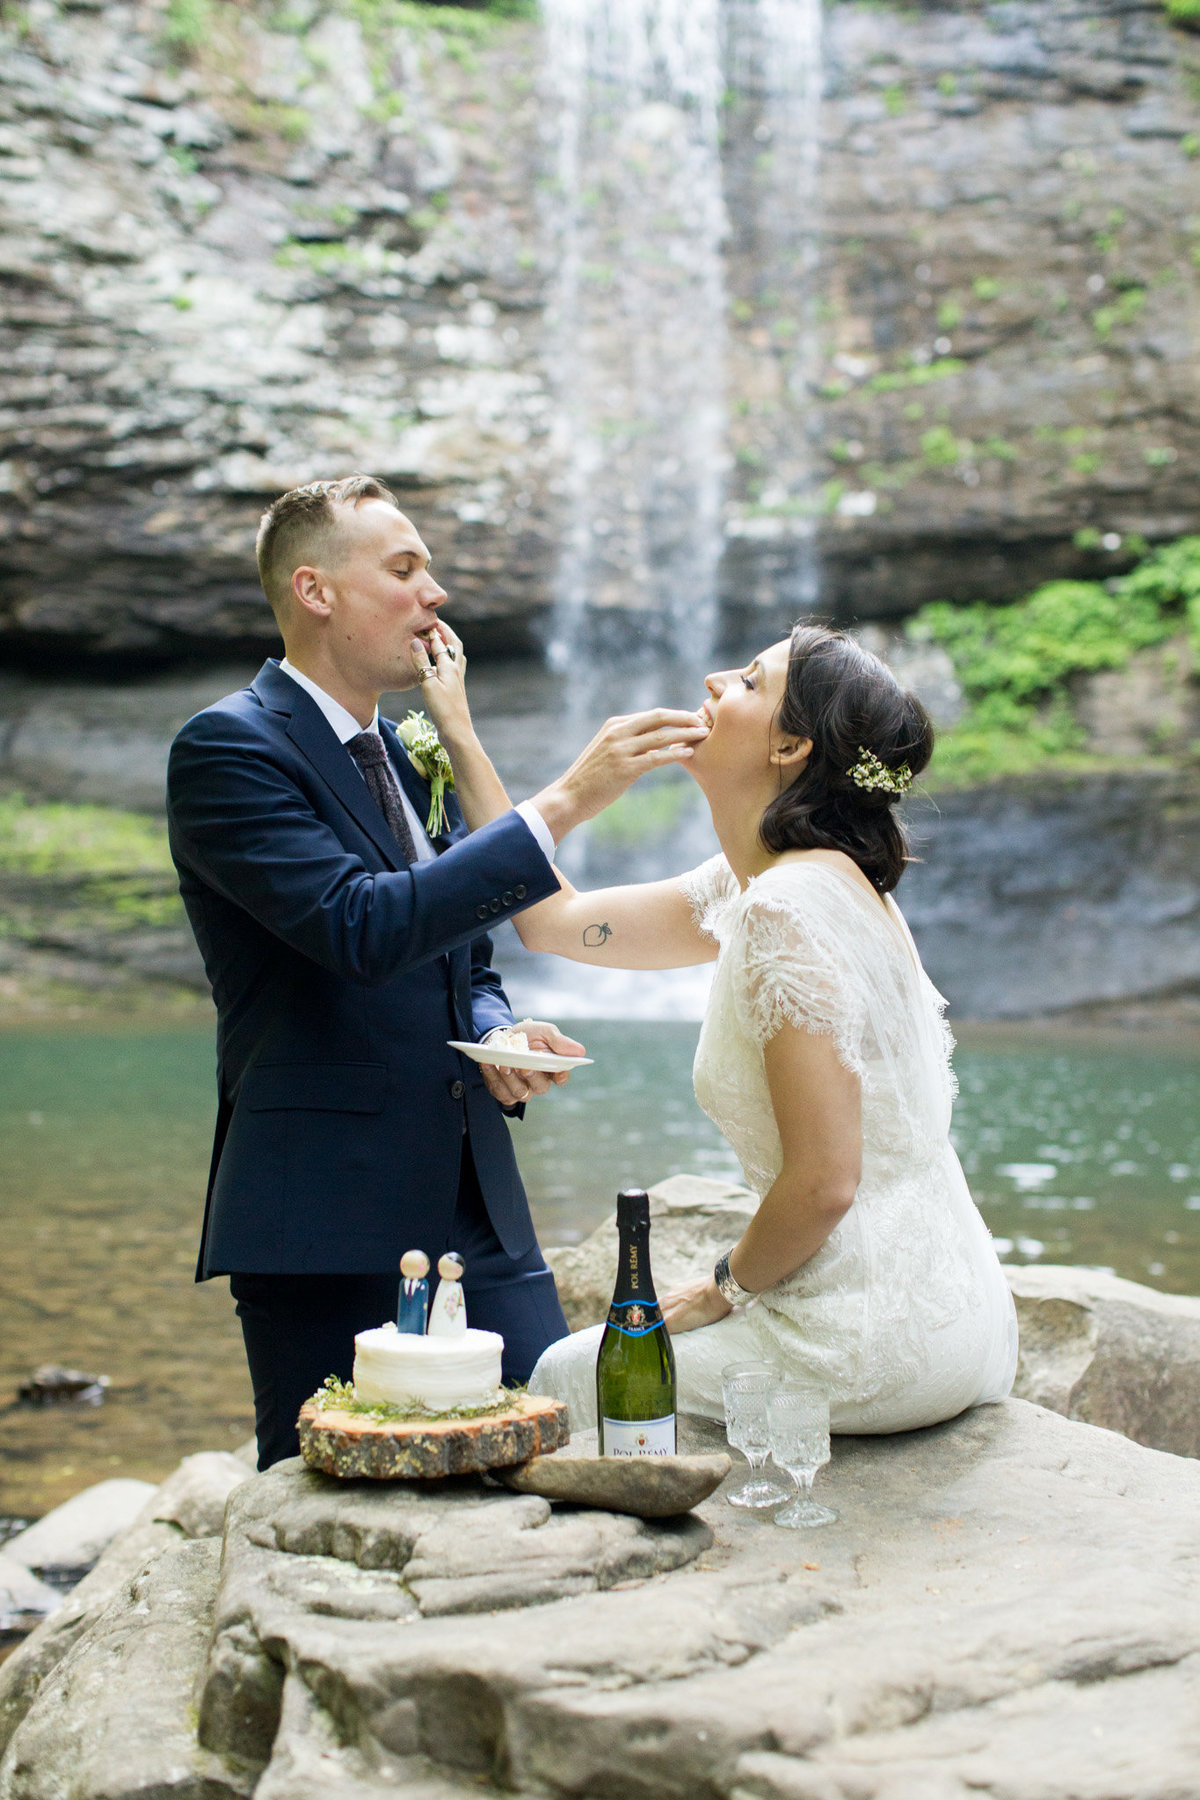 Cake cutting traditions by a waterfall by destination elopement photographer Rebecca Cerasani